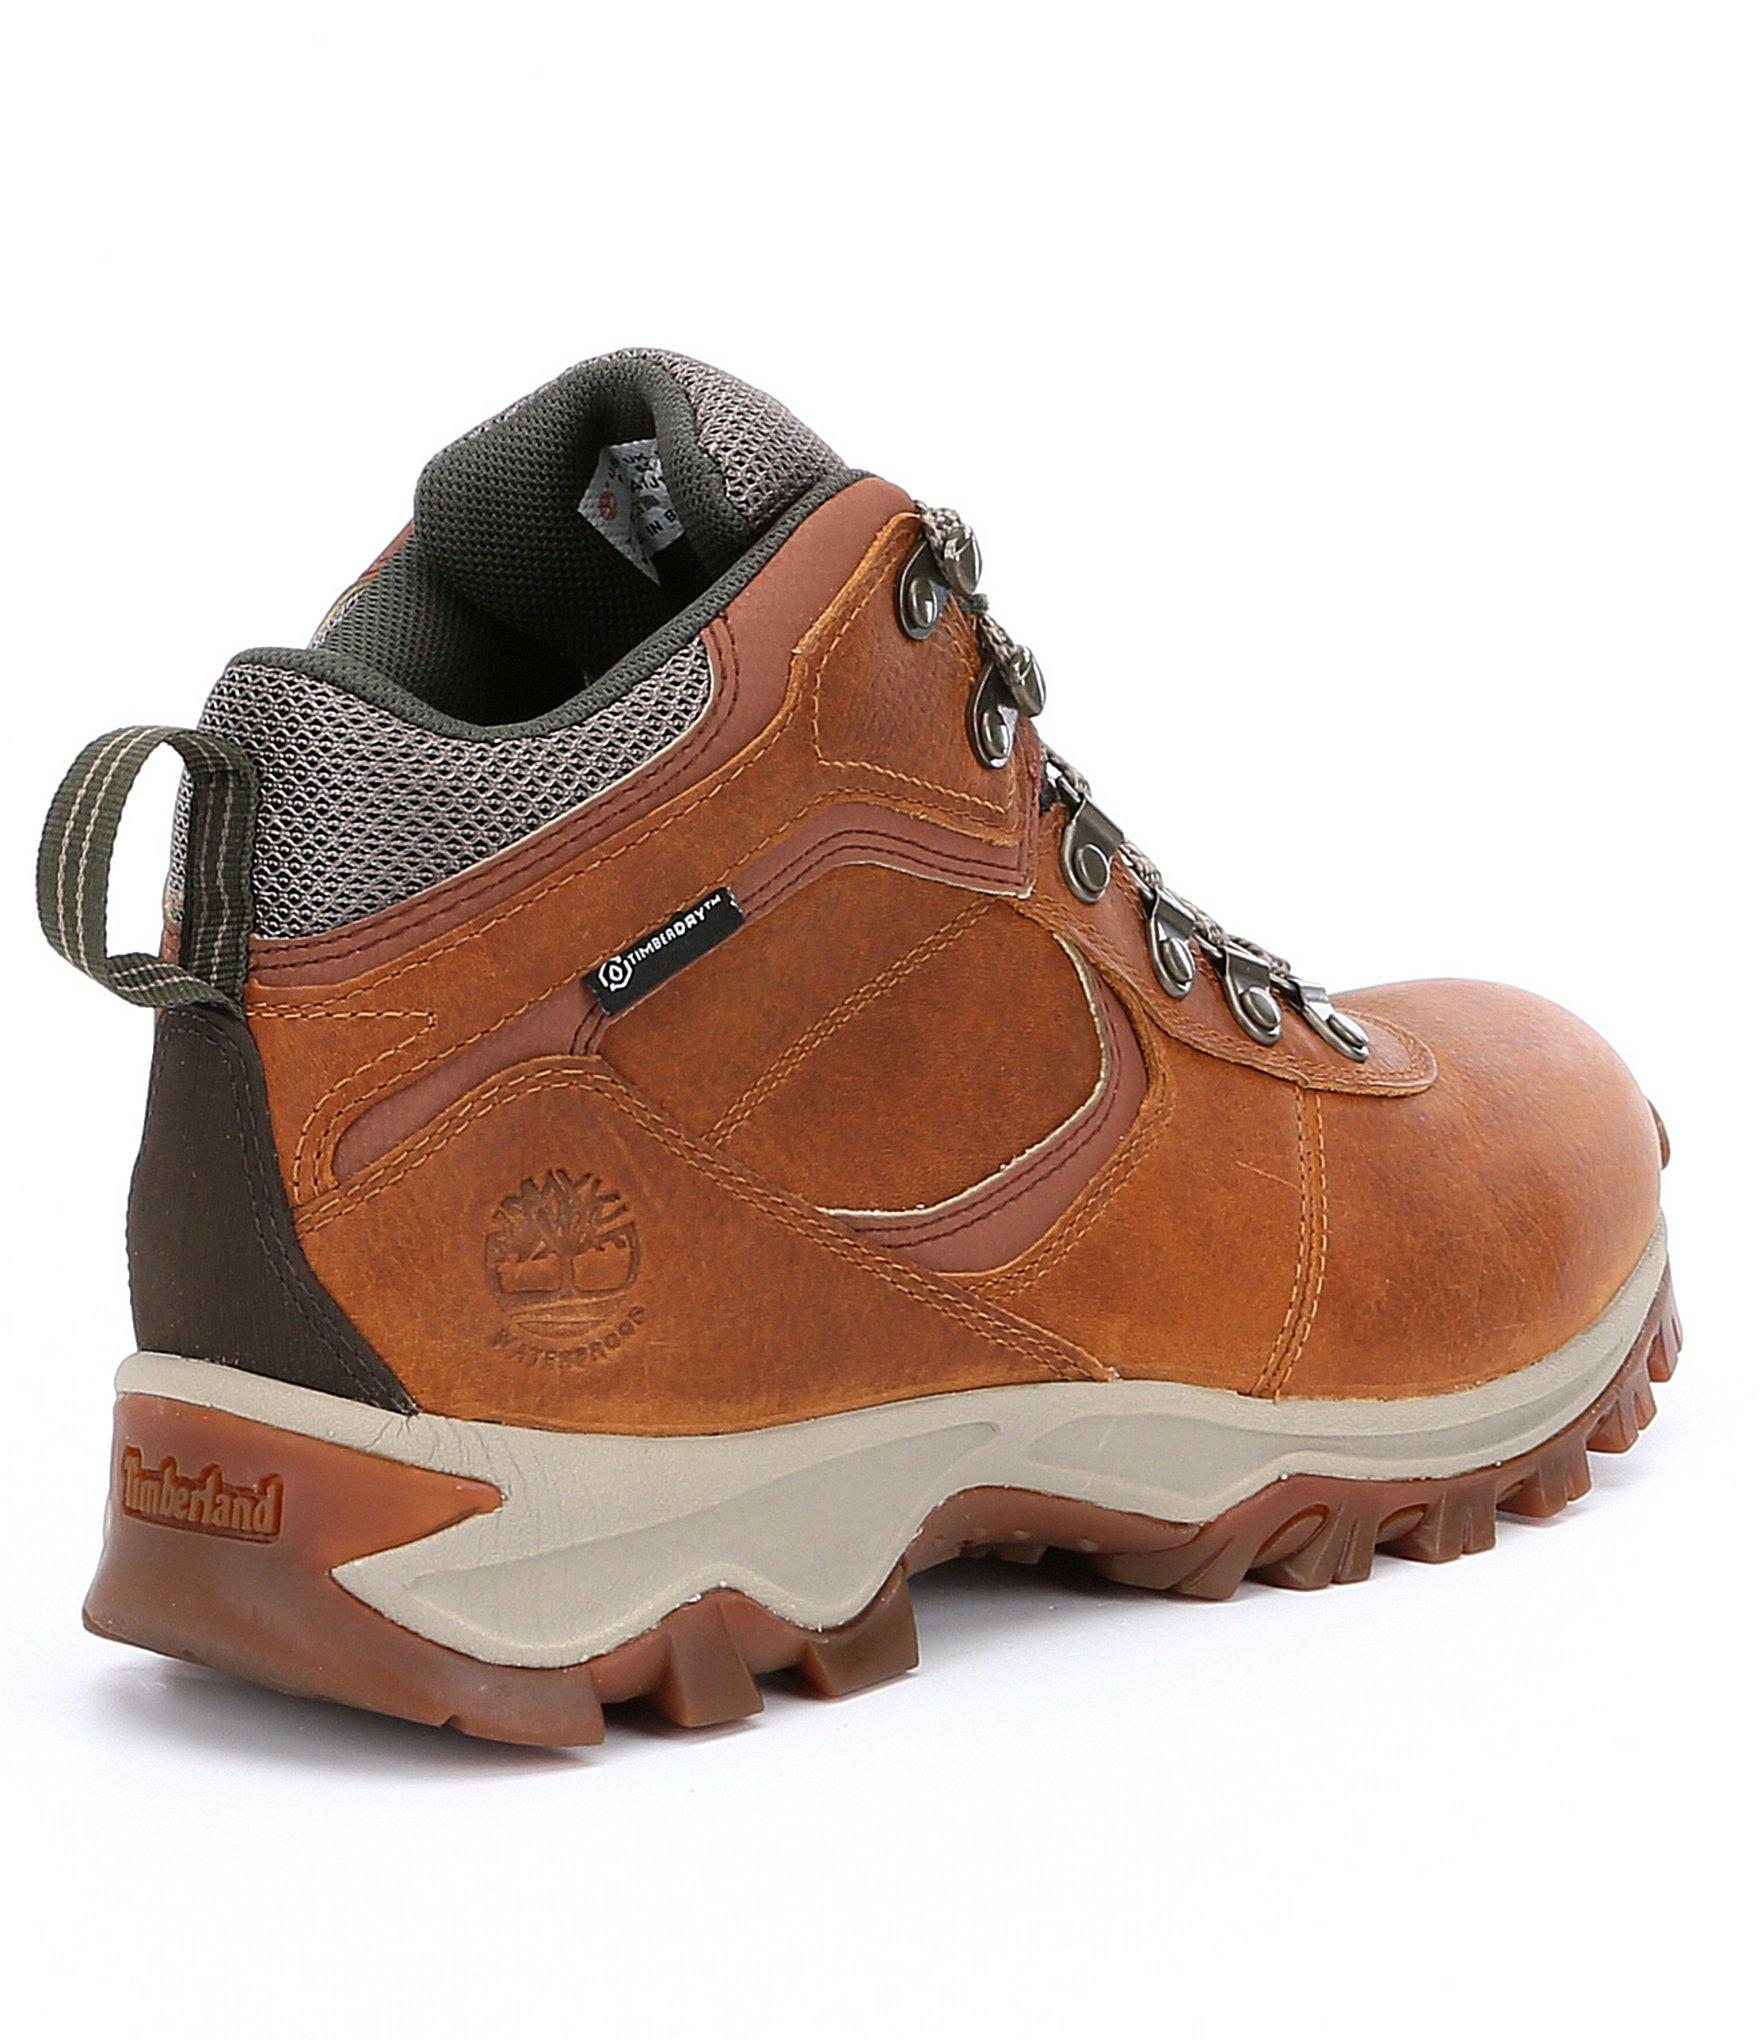 579f8d2a868 Brown Men ́s Mt. Maddsen Waterproof Mid Hiking Boots